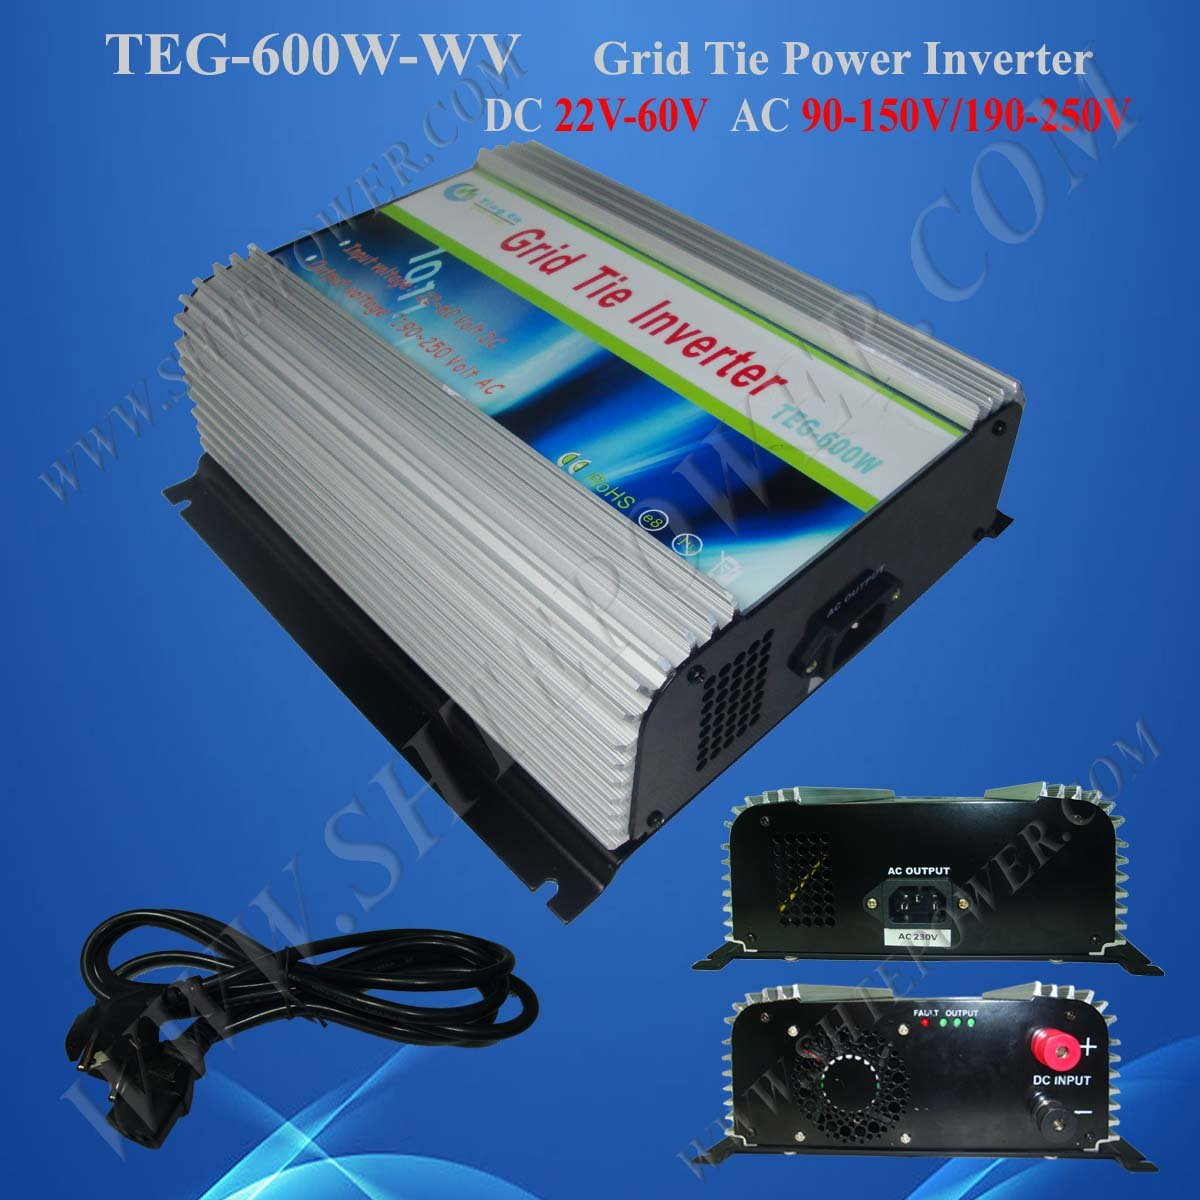 Direct sale, High Tech, 600W PV Grid Tie Inverter with 22VDC to 60VDC input DC voltage ,240VAC output Free shipping(China (Mainland))